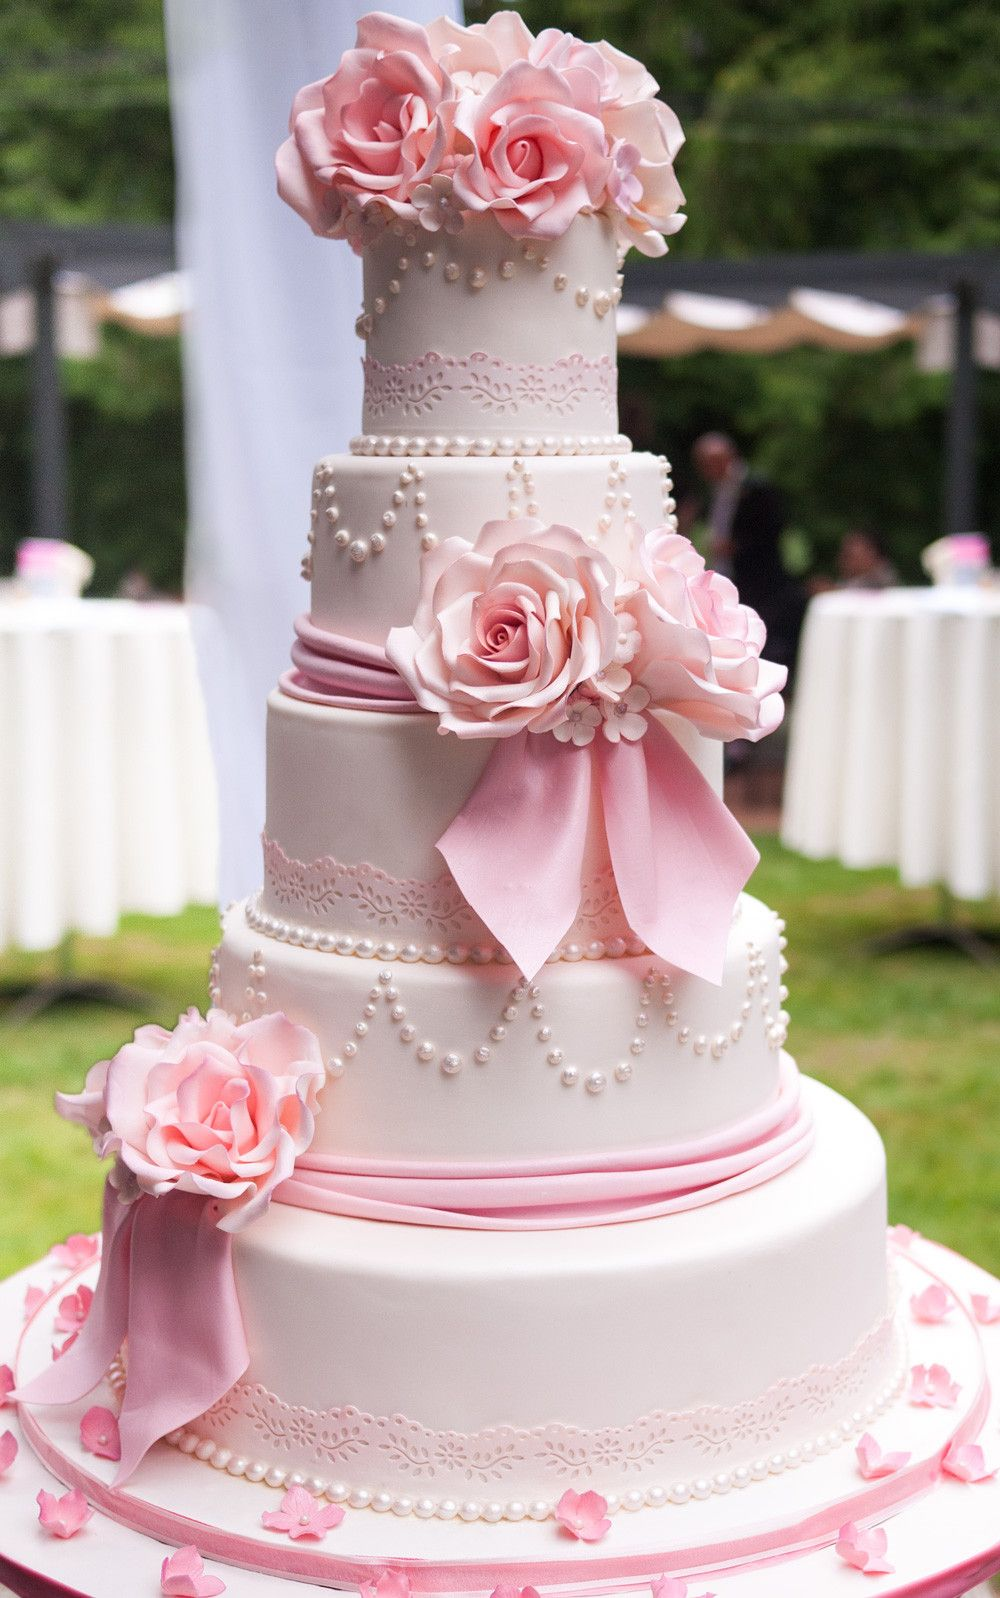 Pin by Guadalupe Hernandez on Beautiful Cakes | Pinterest | Cake ...